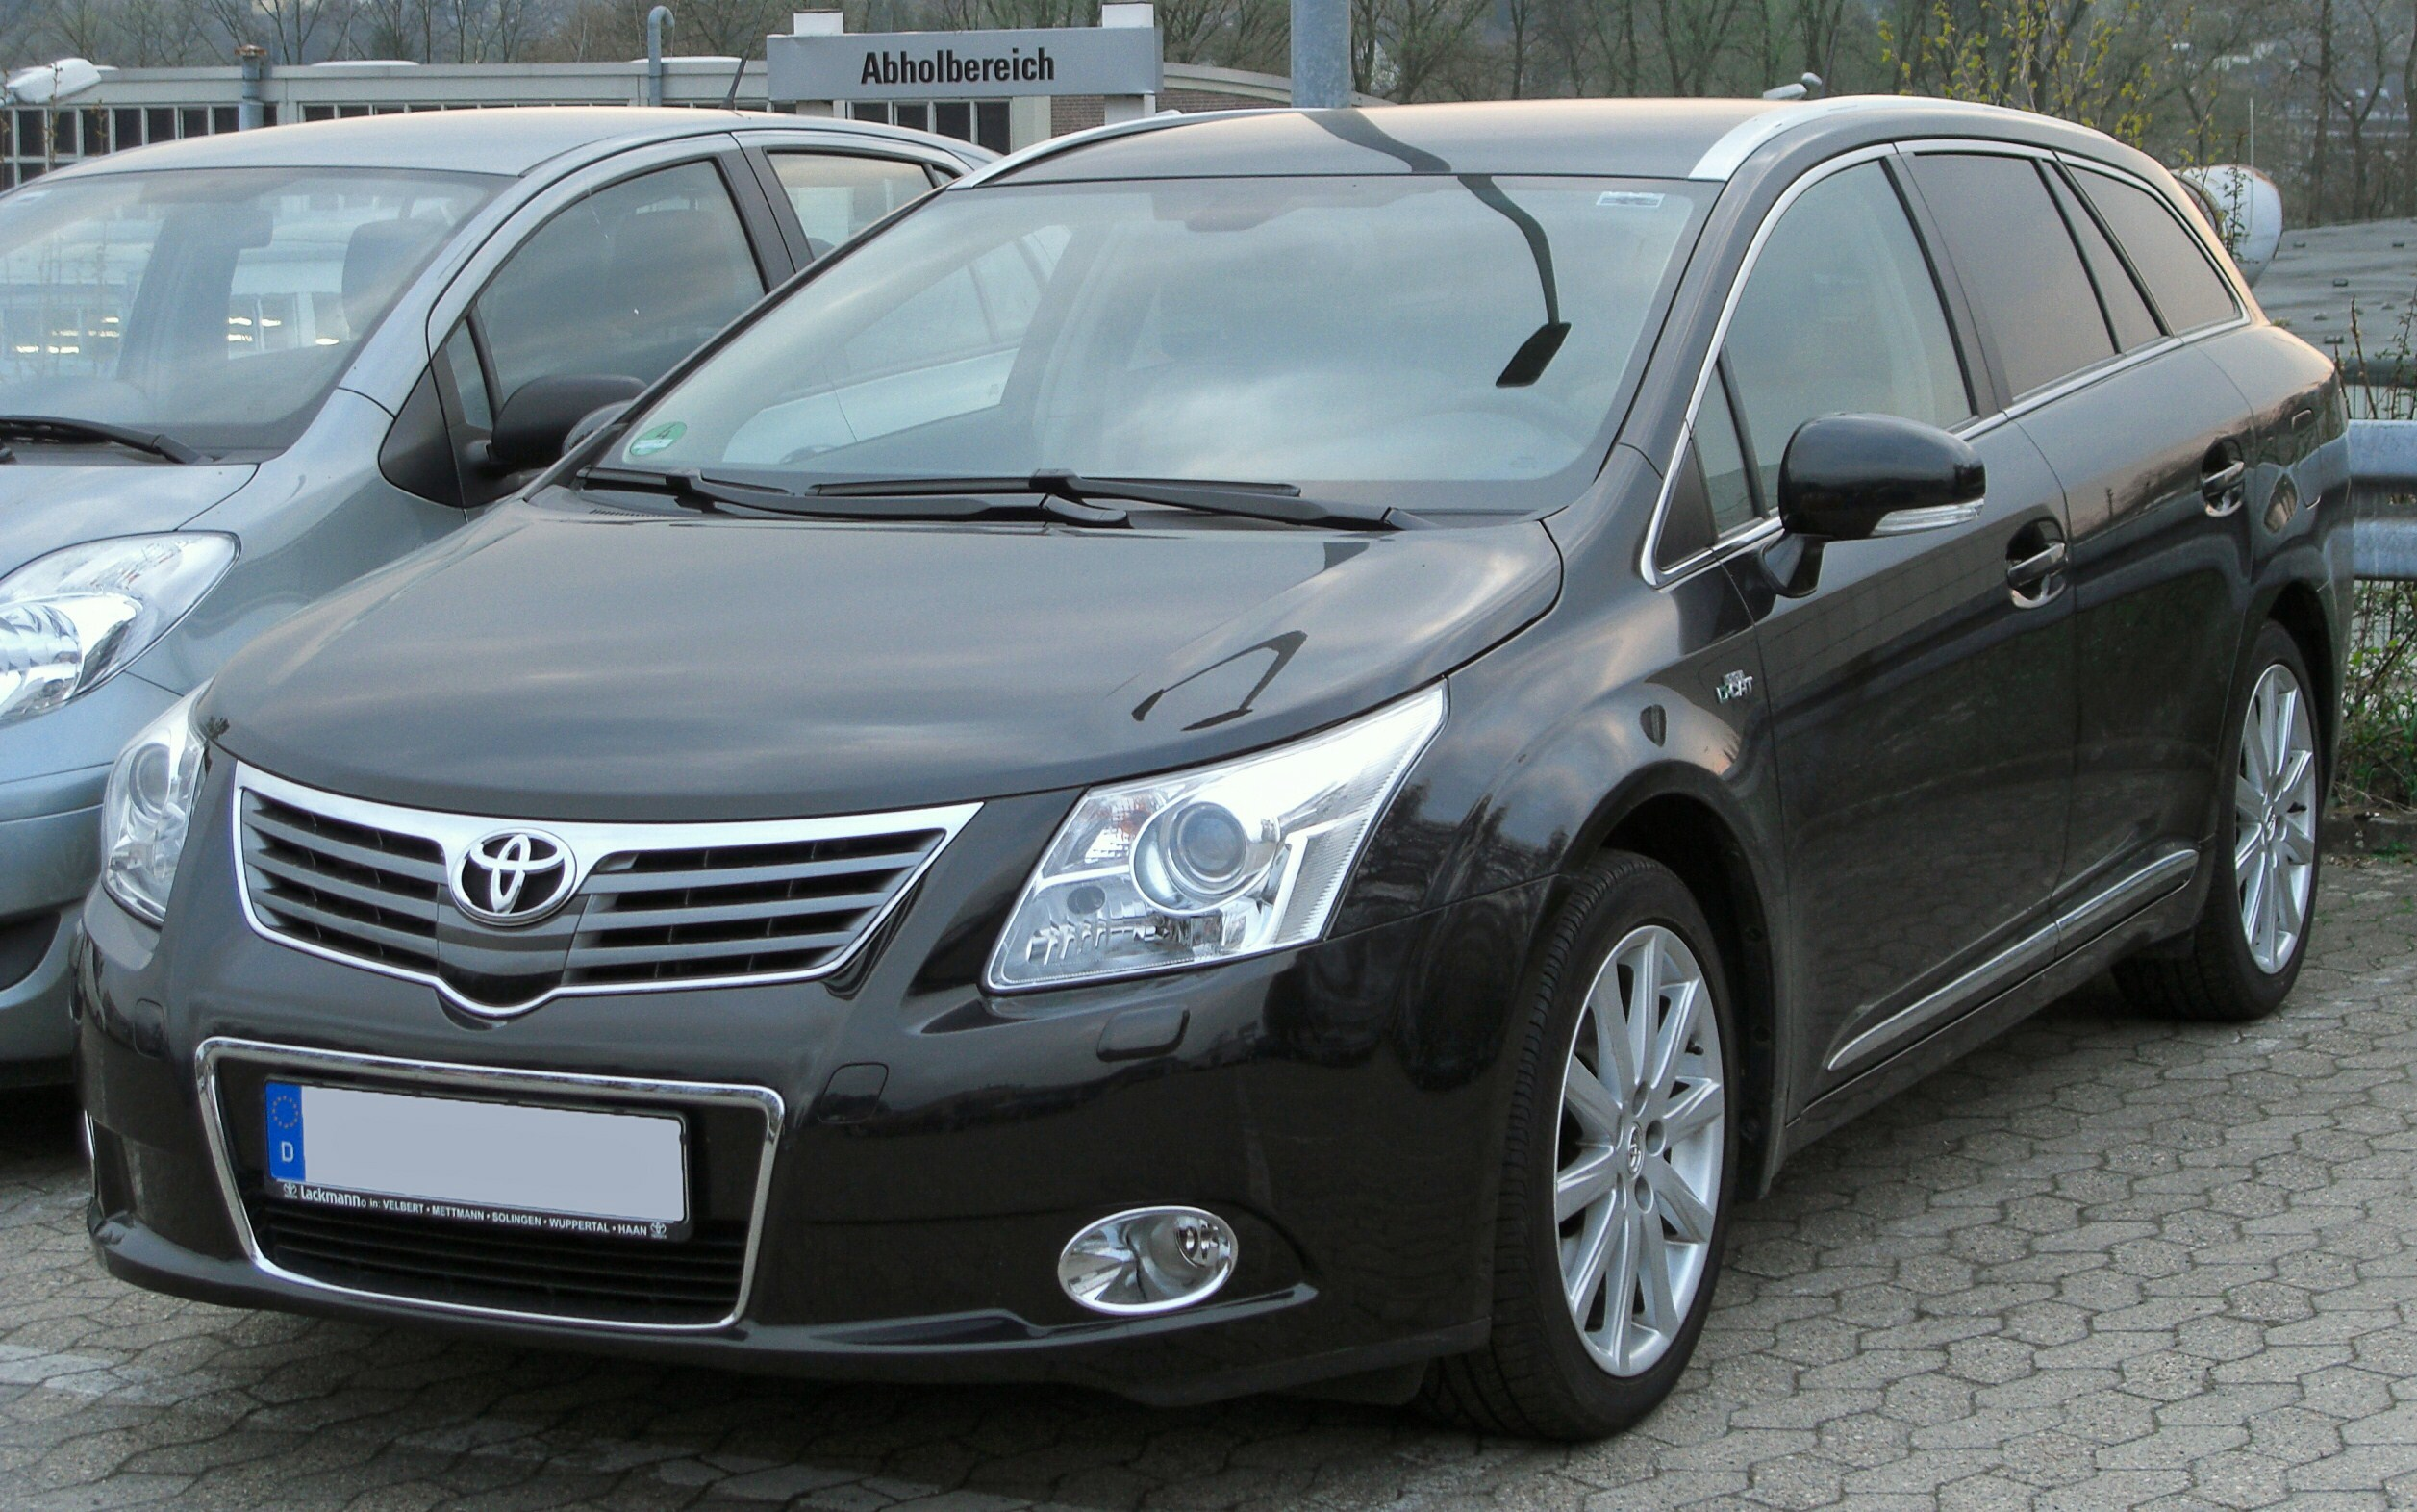 file toyota avensis combi iii front wikimedia commons. Black Bedroom Furniture Sets. Home Design Ideas